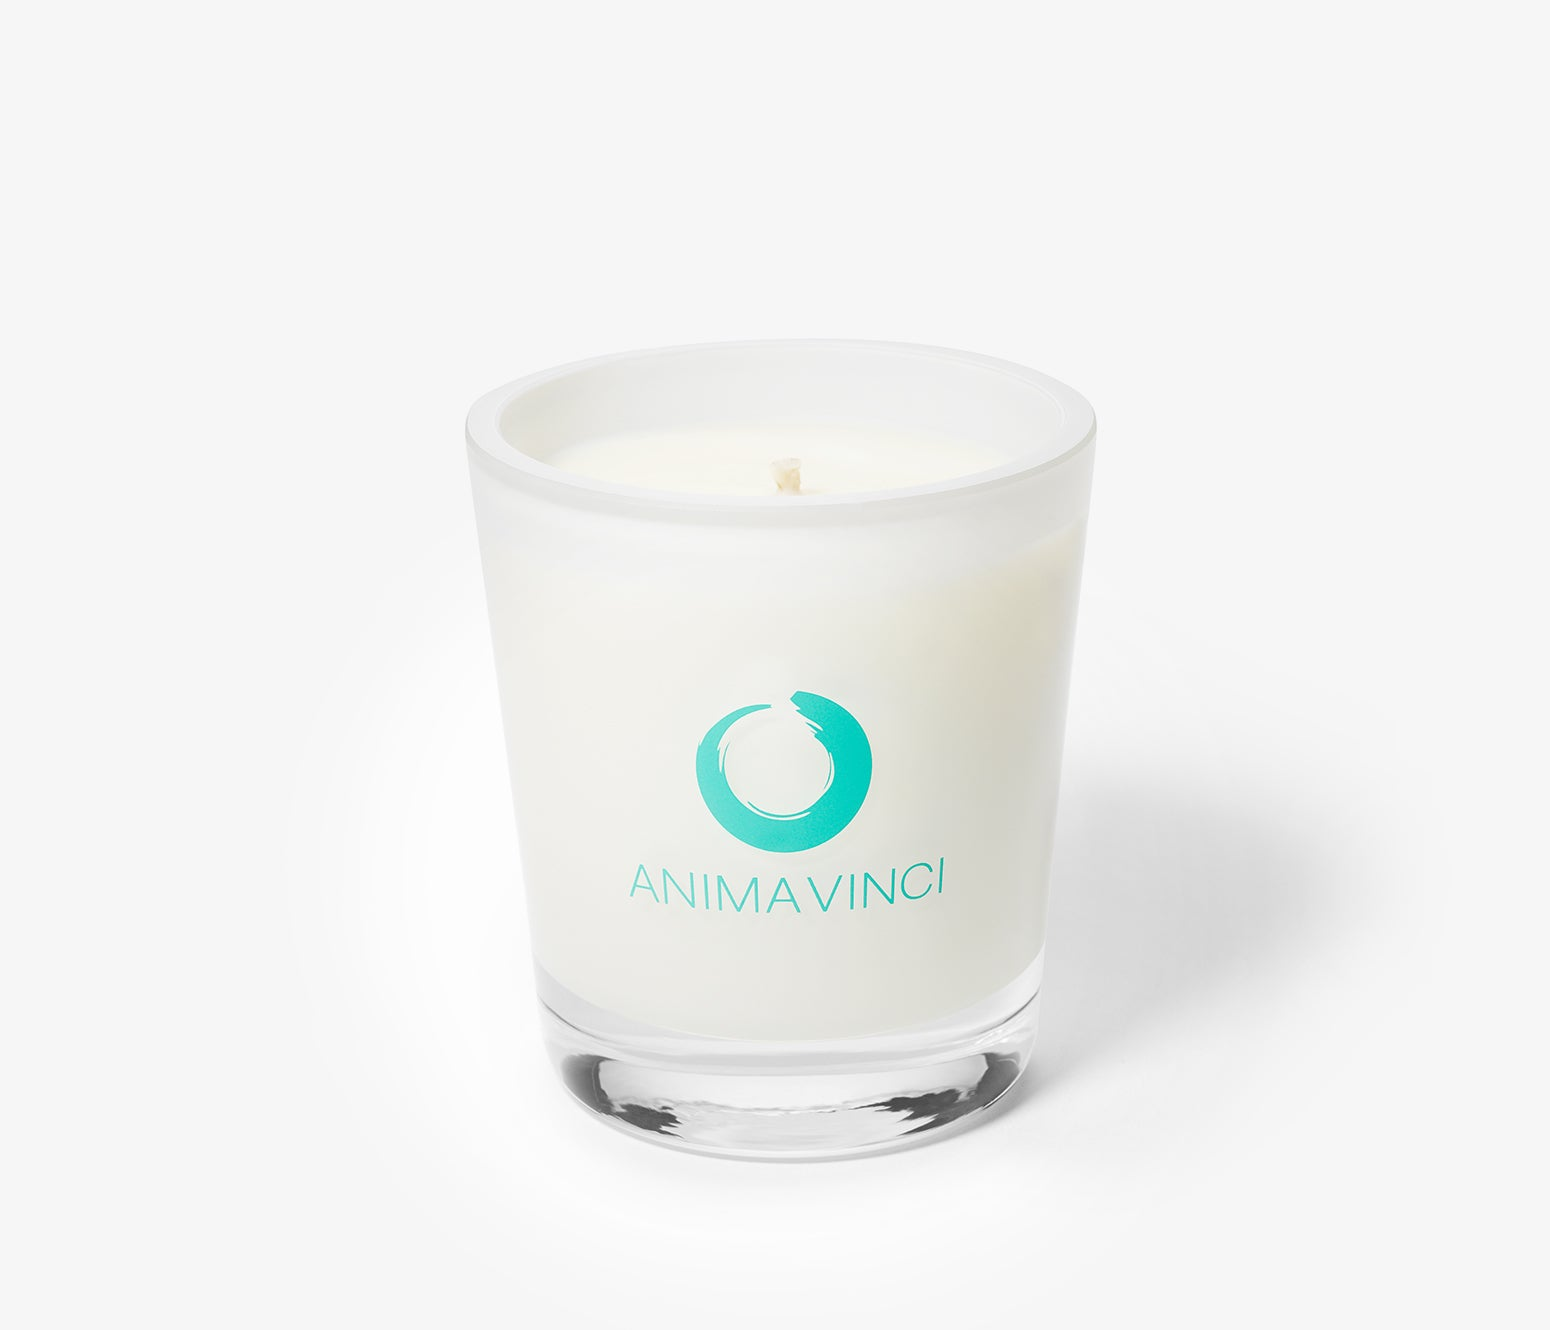 Anima Vinci - Bliss in Bali Candle - 290g - NEC8675 - product image - Candle - Les Senteurs